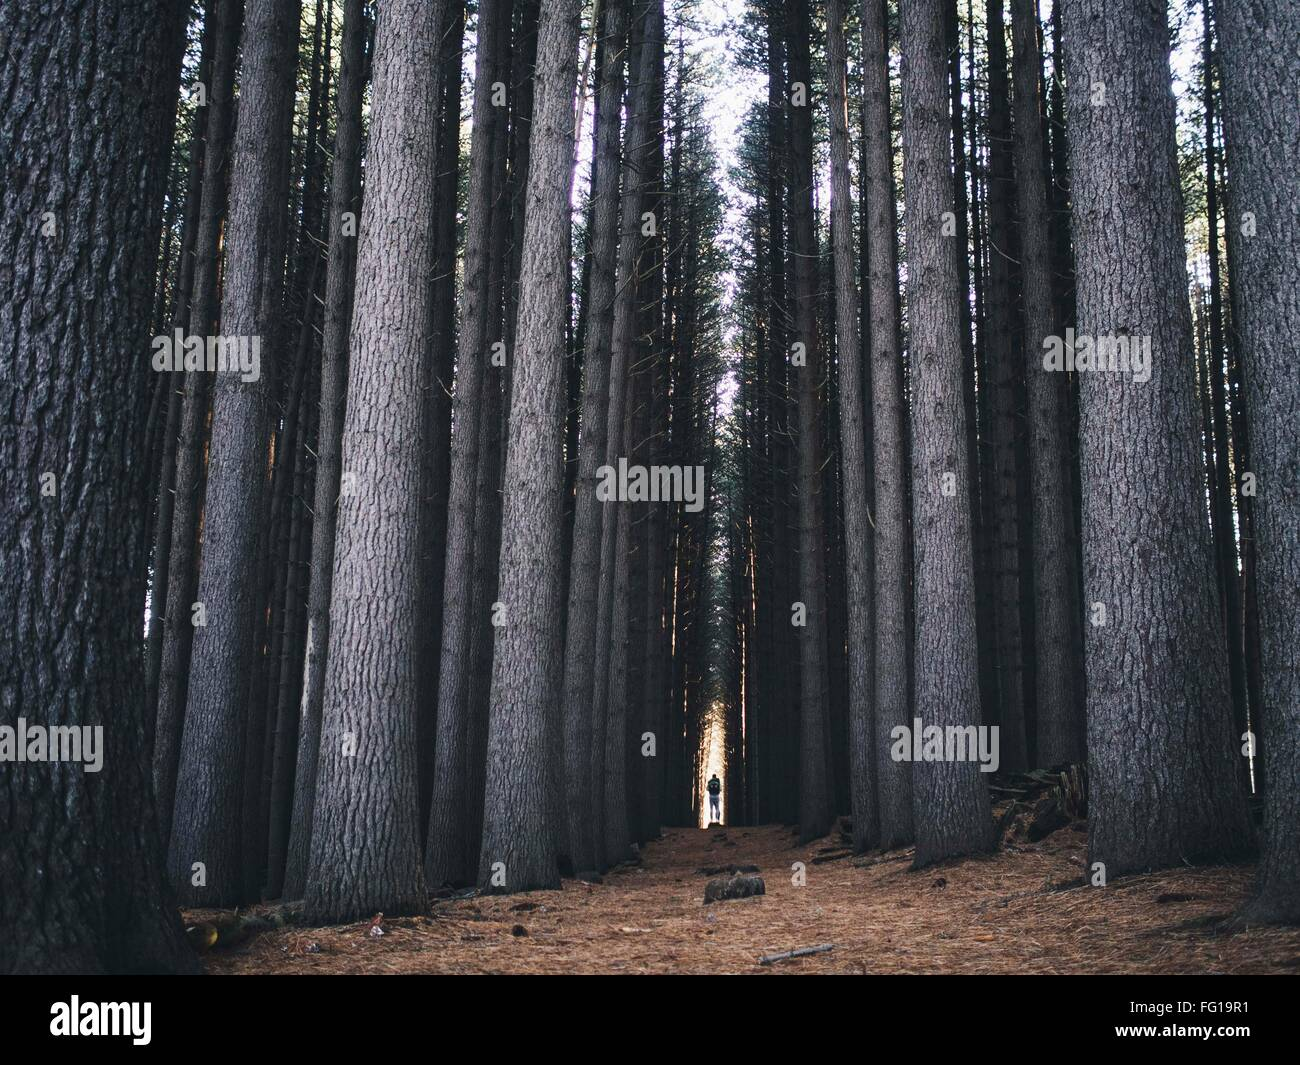 View Of Trees In The Forest Stock Photo